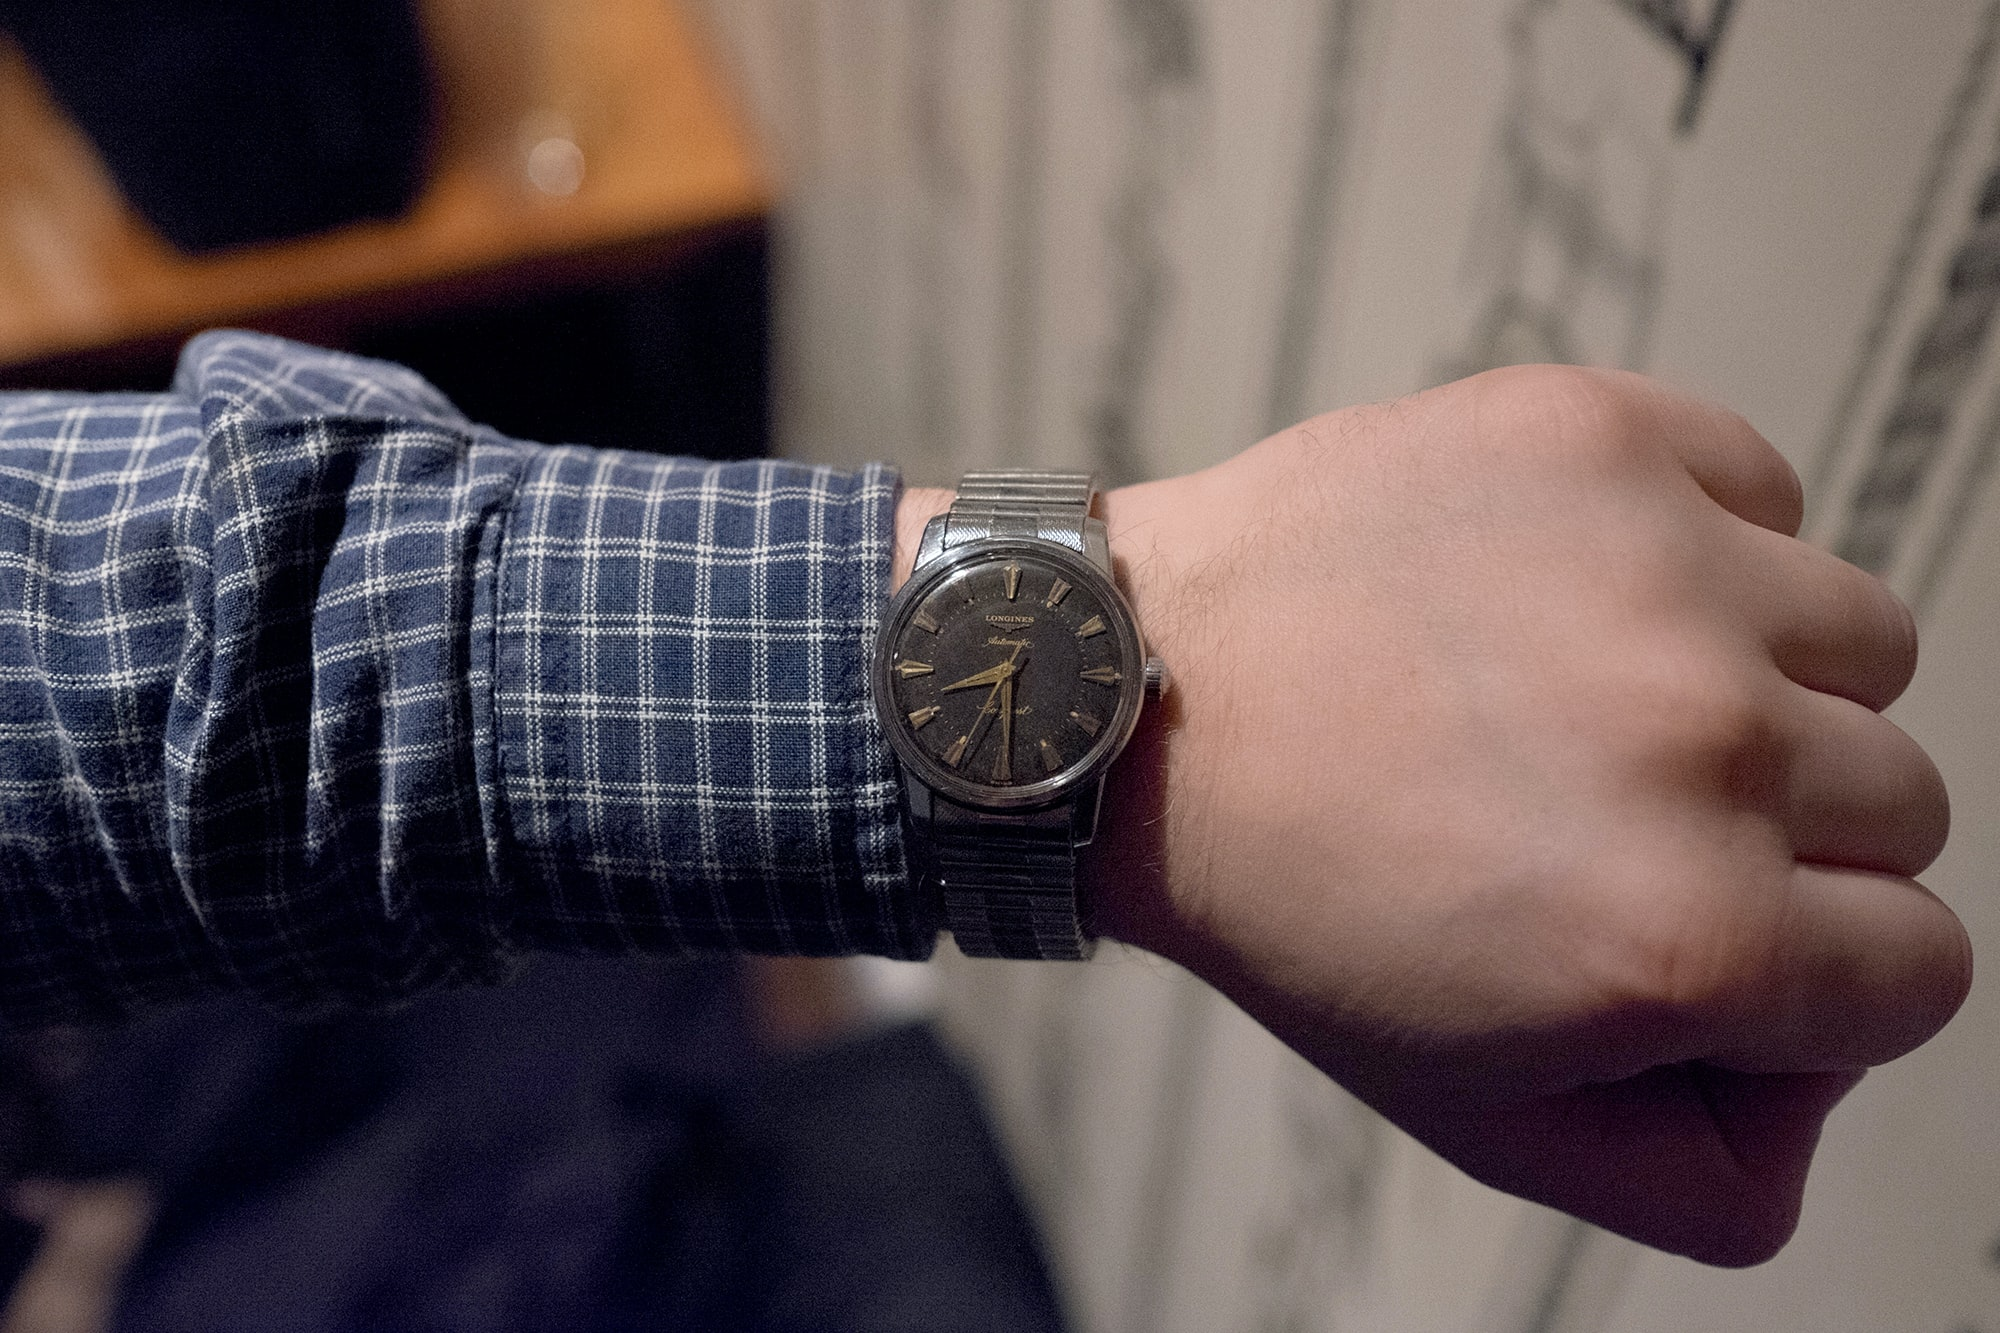 Photo Report: Watch Spotting At The HODINKEE Meet-Up In London (Plus Our Holiday 2016 Pop-Up At Harrods) Photo Report: Watch Spotting At The HODINKEE Meet-Up In London (Plus Our Holiday 2016 Pop-Up At Harrods) Hodinkee event 29 nov 2016 82